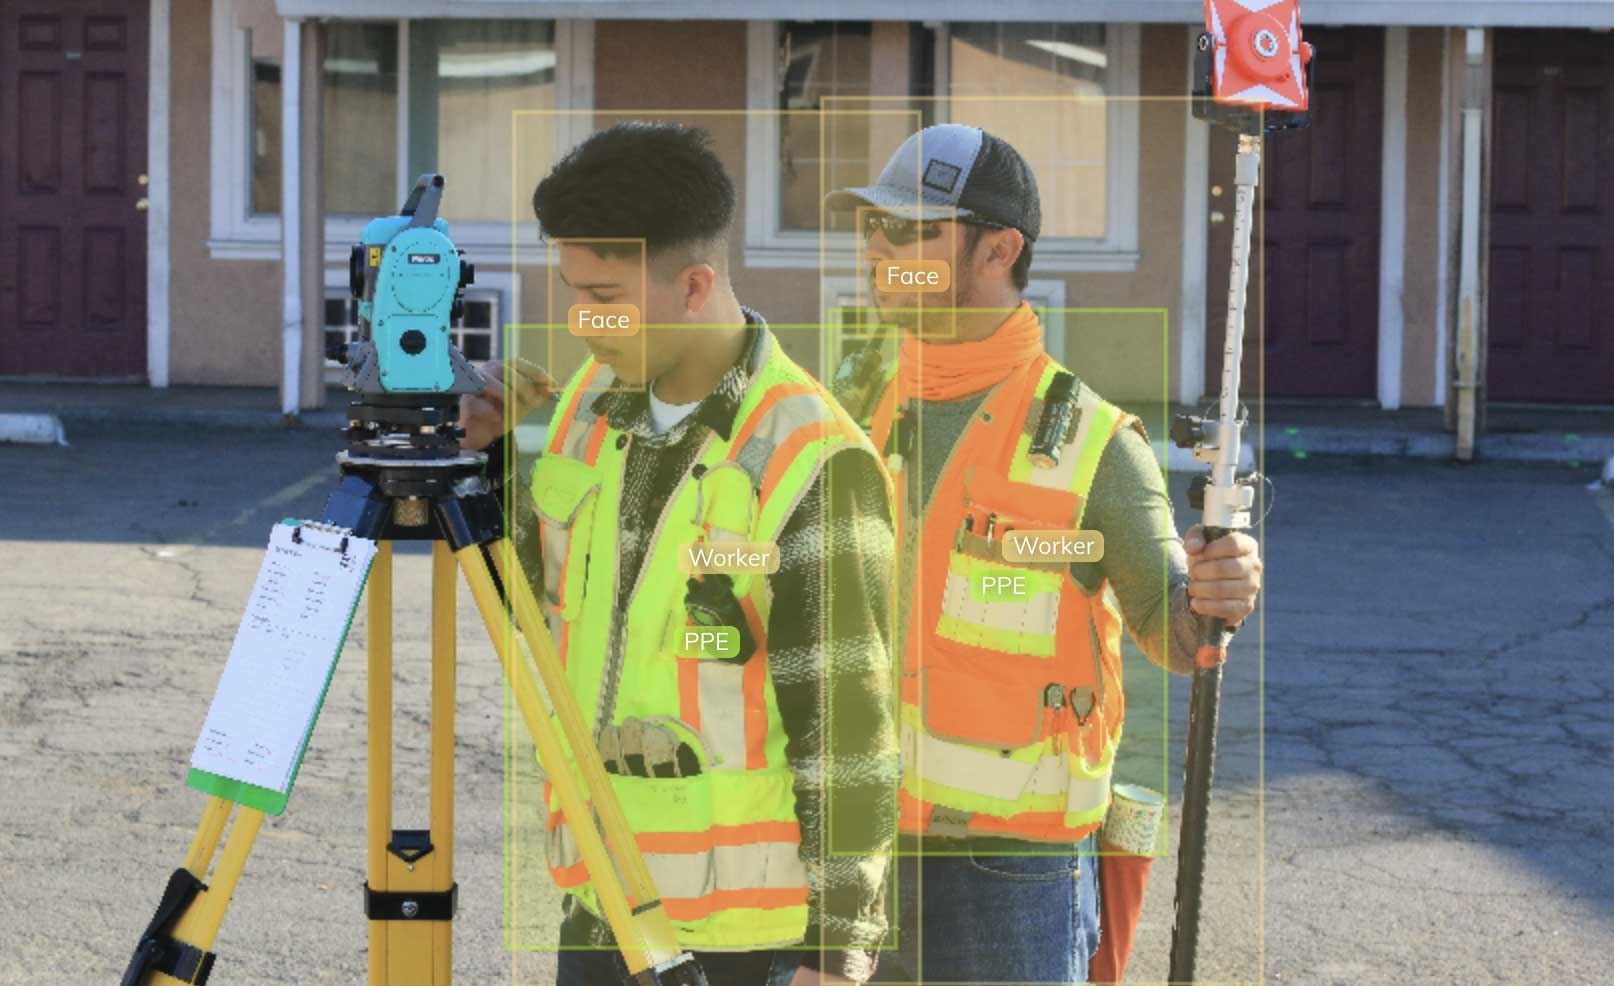 Bounding box annotations of construction workers and PPE using V7